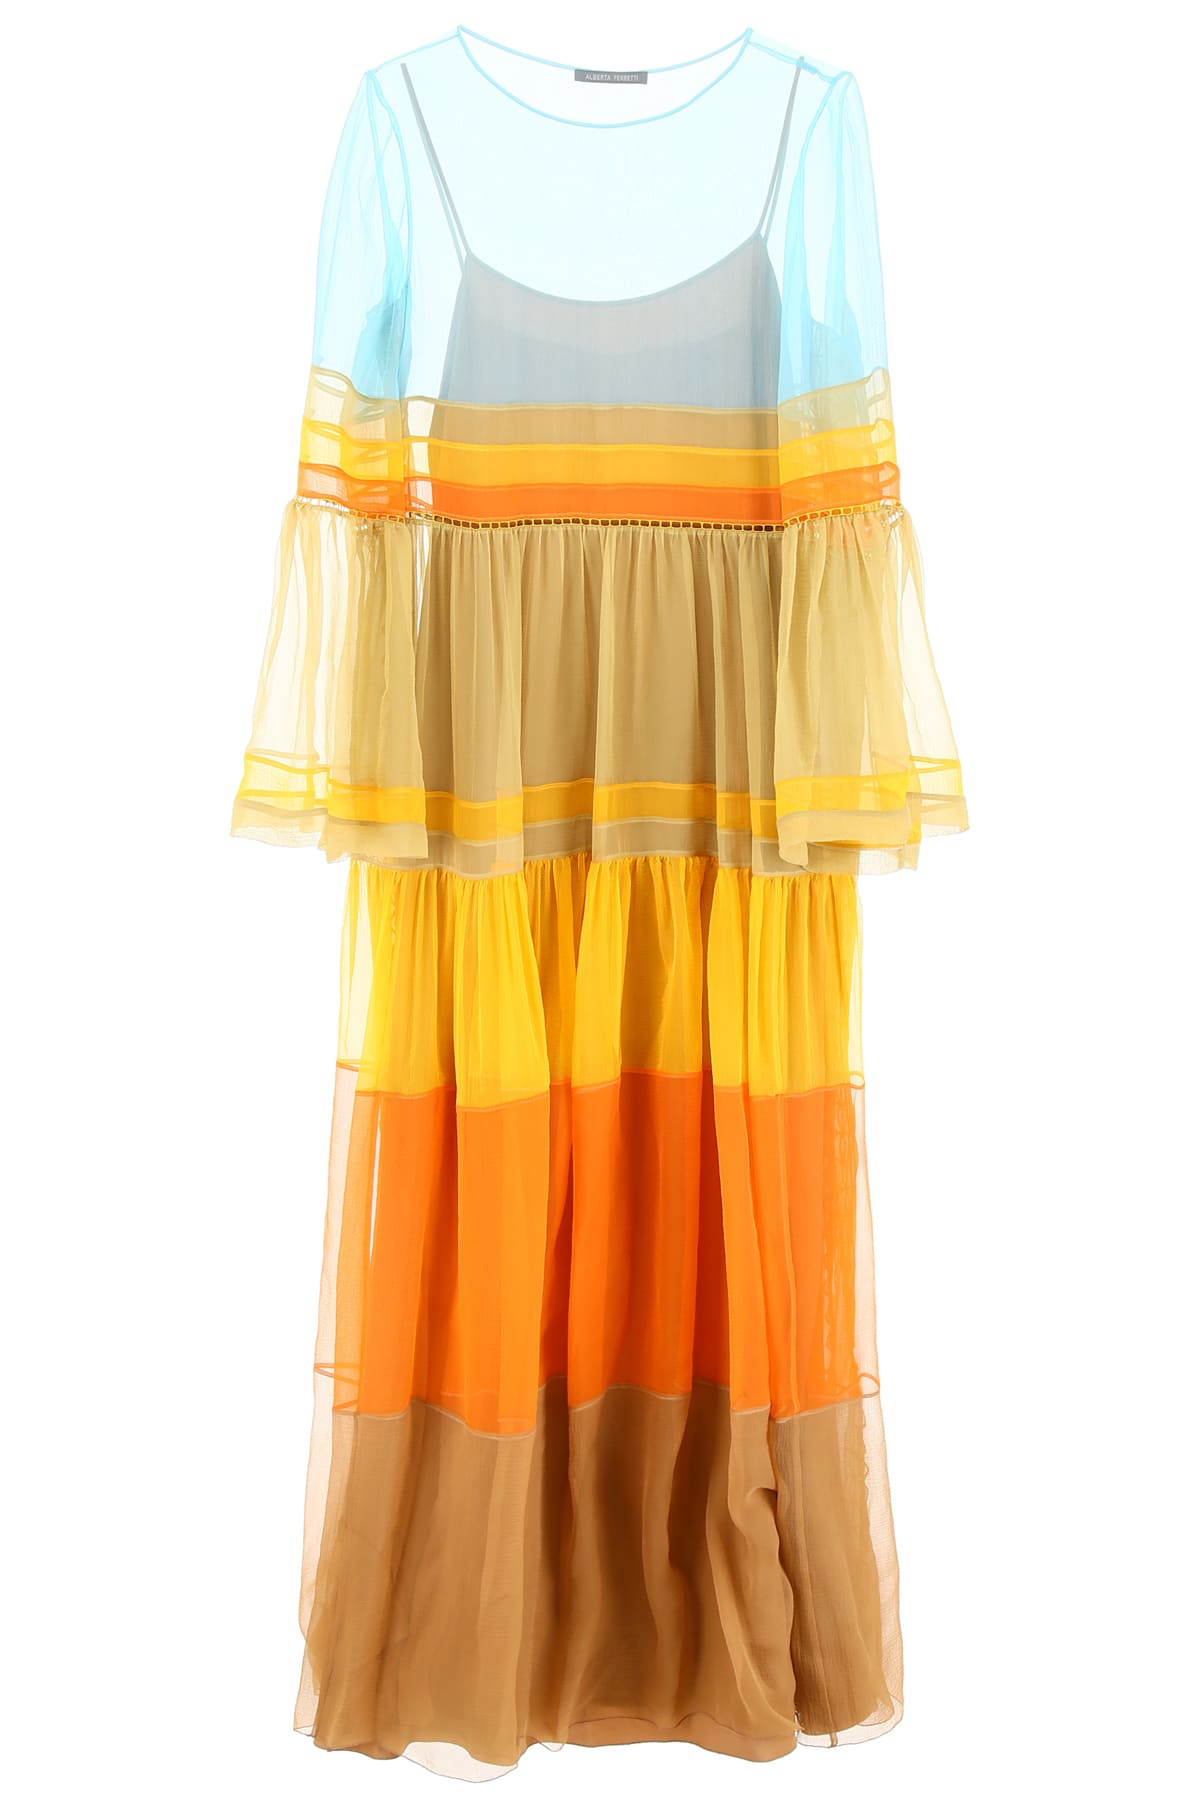 Alberta Ferretti Multicolor Dress